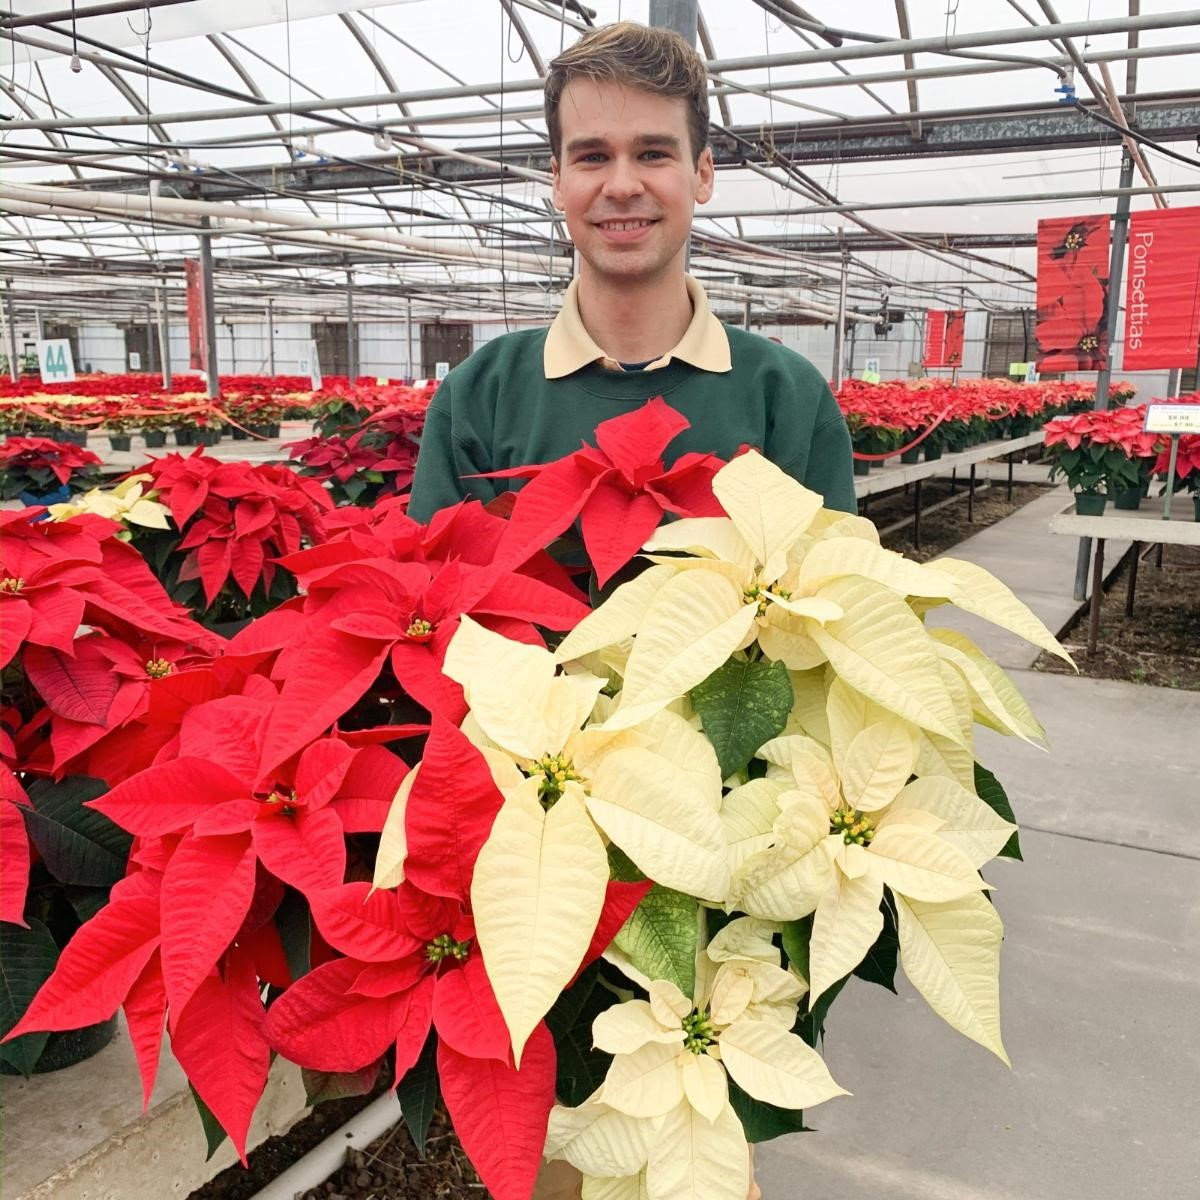 poinsettia-8.5-inch-pot-triple-branched-24.99.jpg